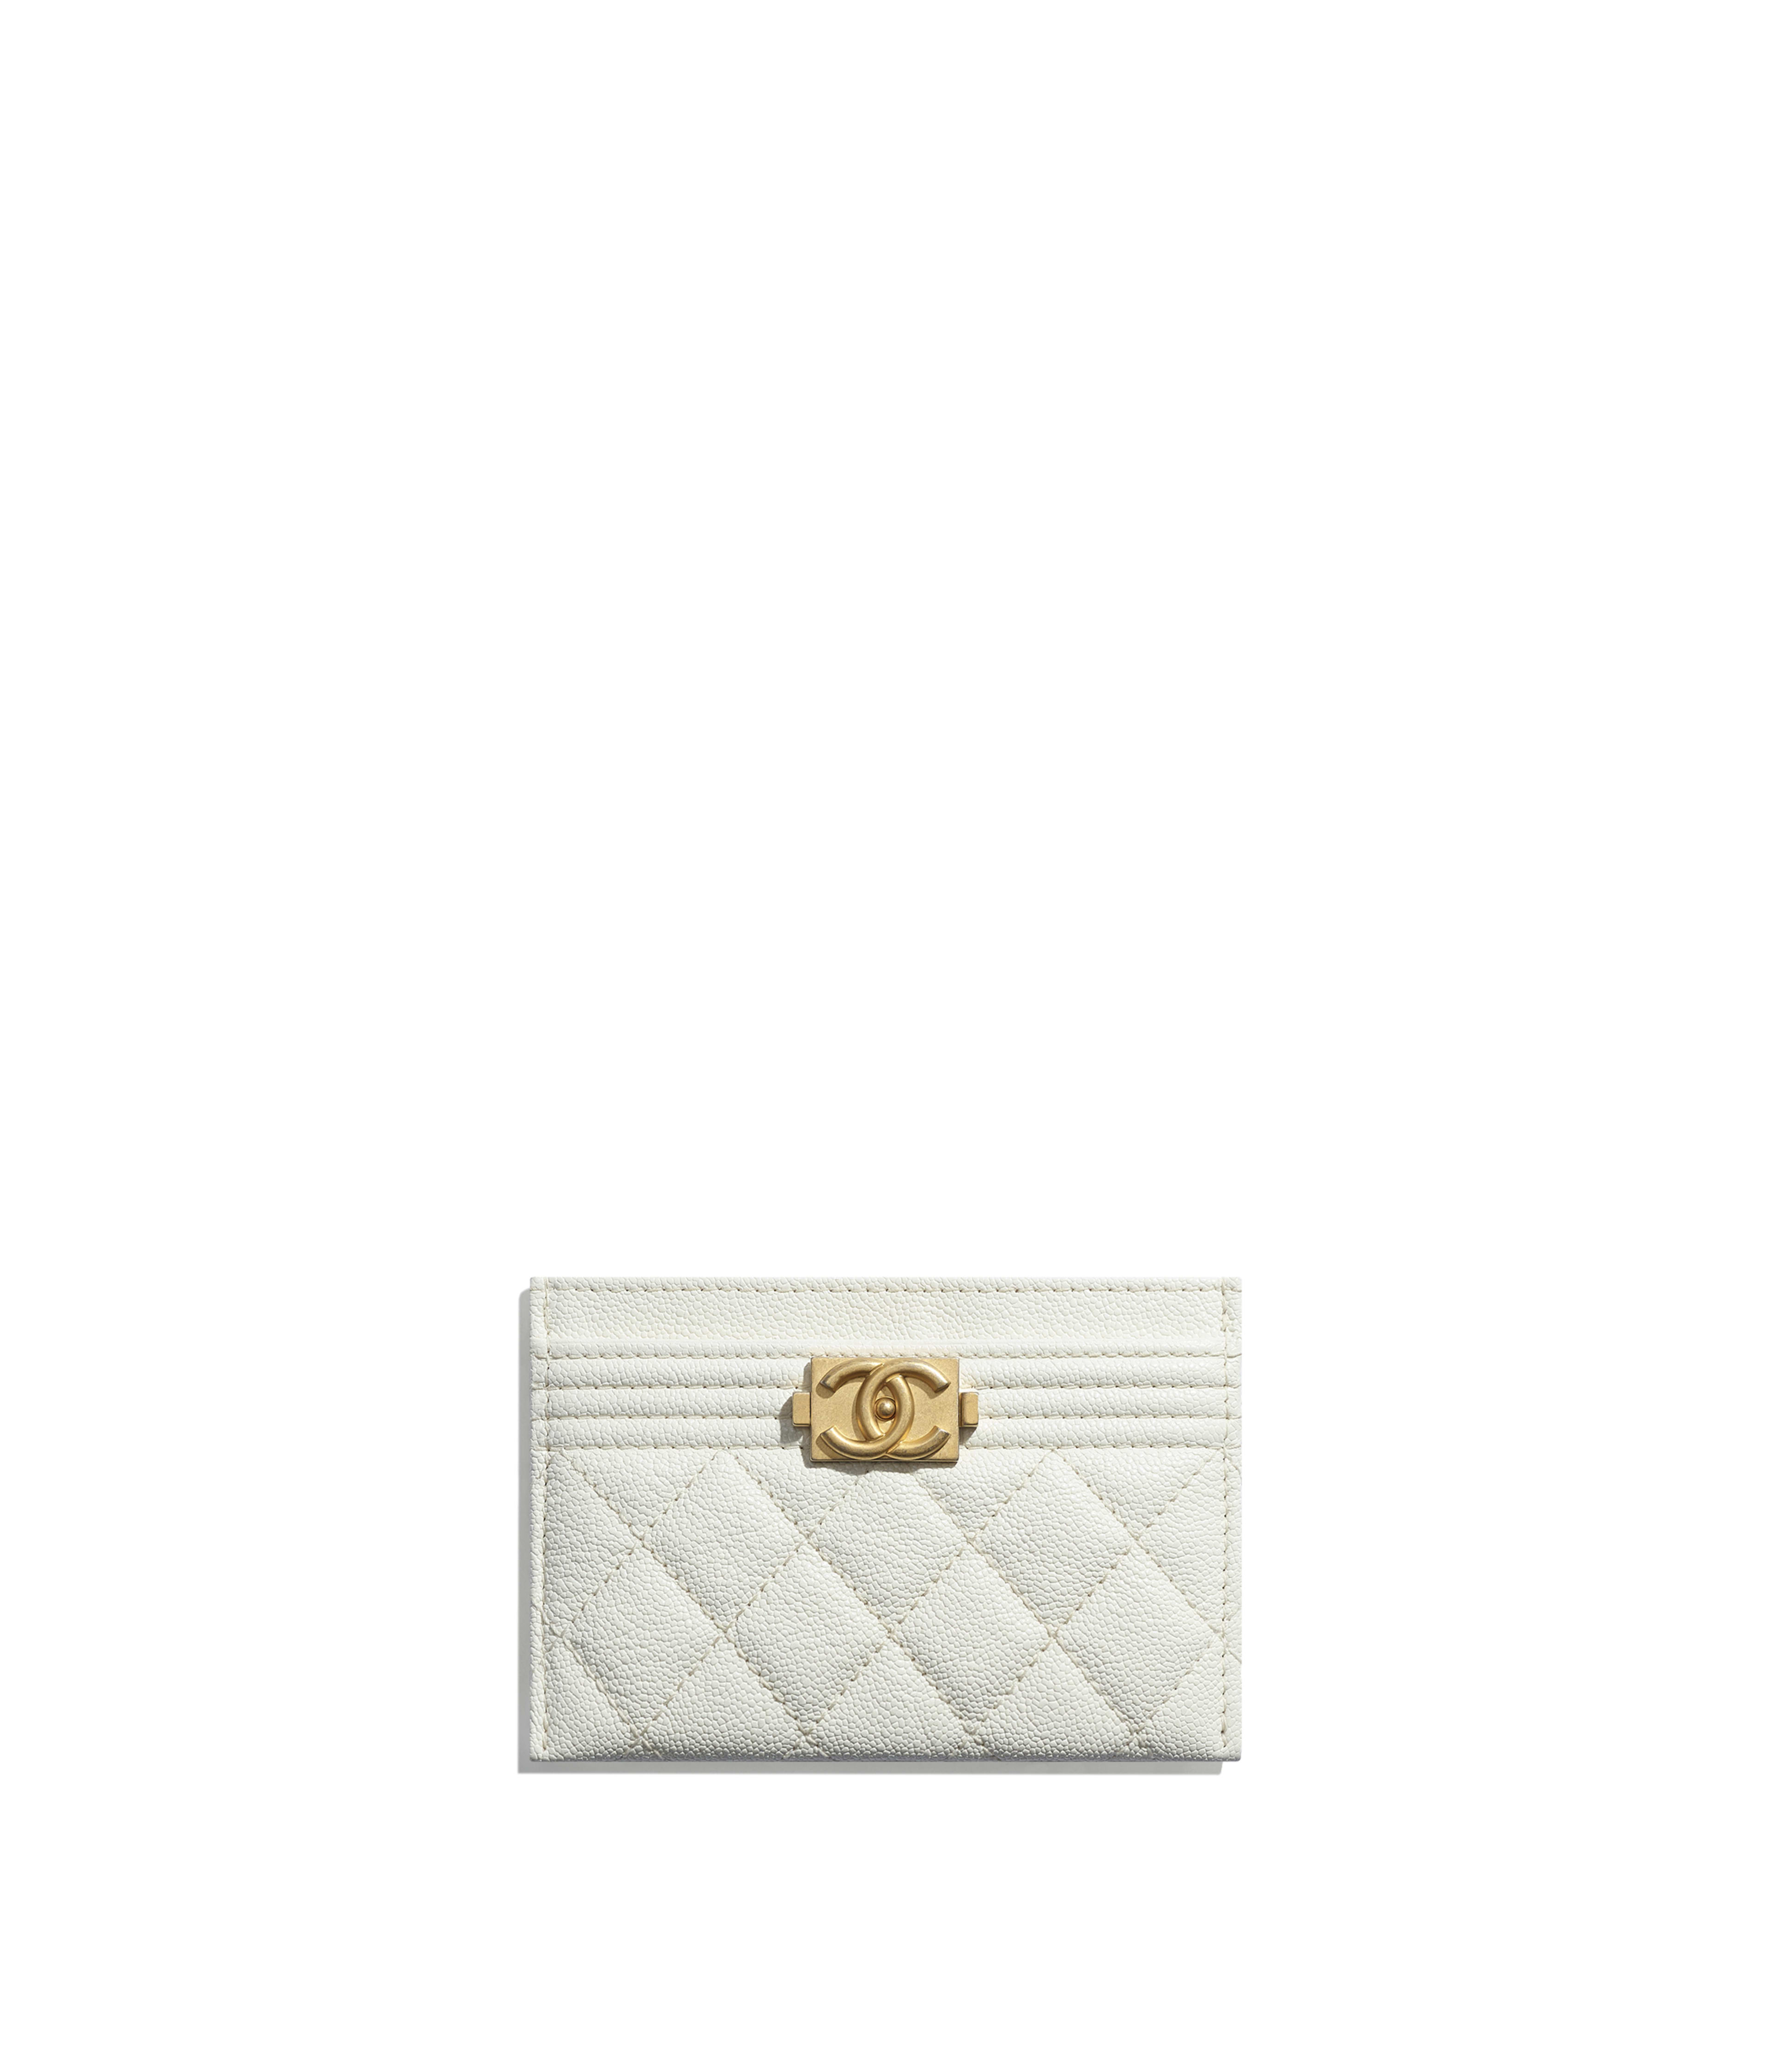 Boy Chanel Card Holder Grained Calfskin Gold Tone Metal White Ref A84431y8362110601